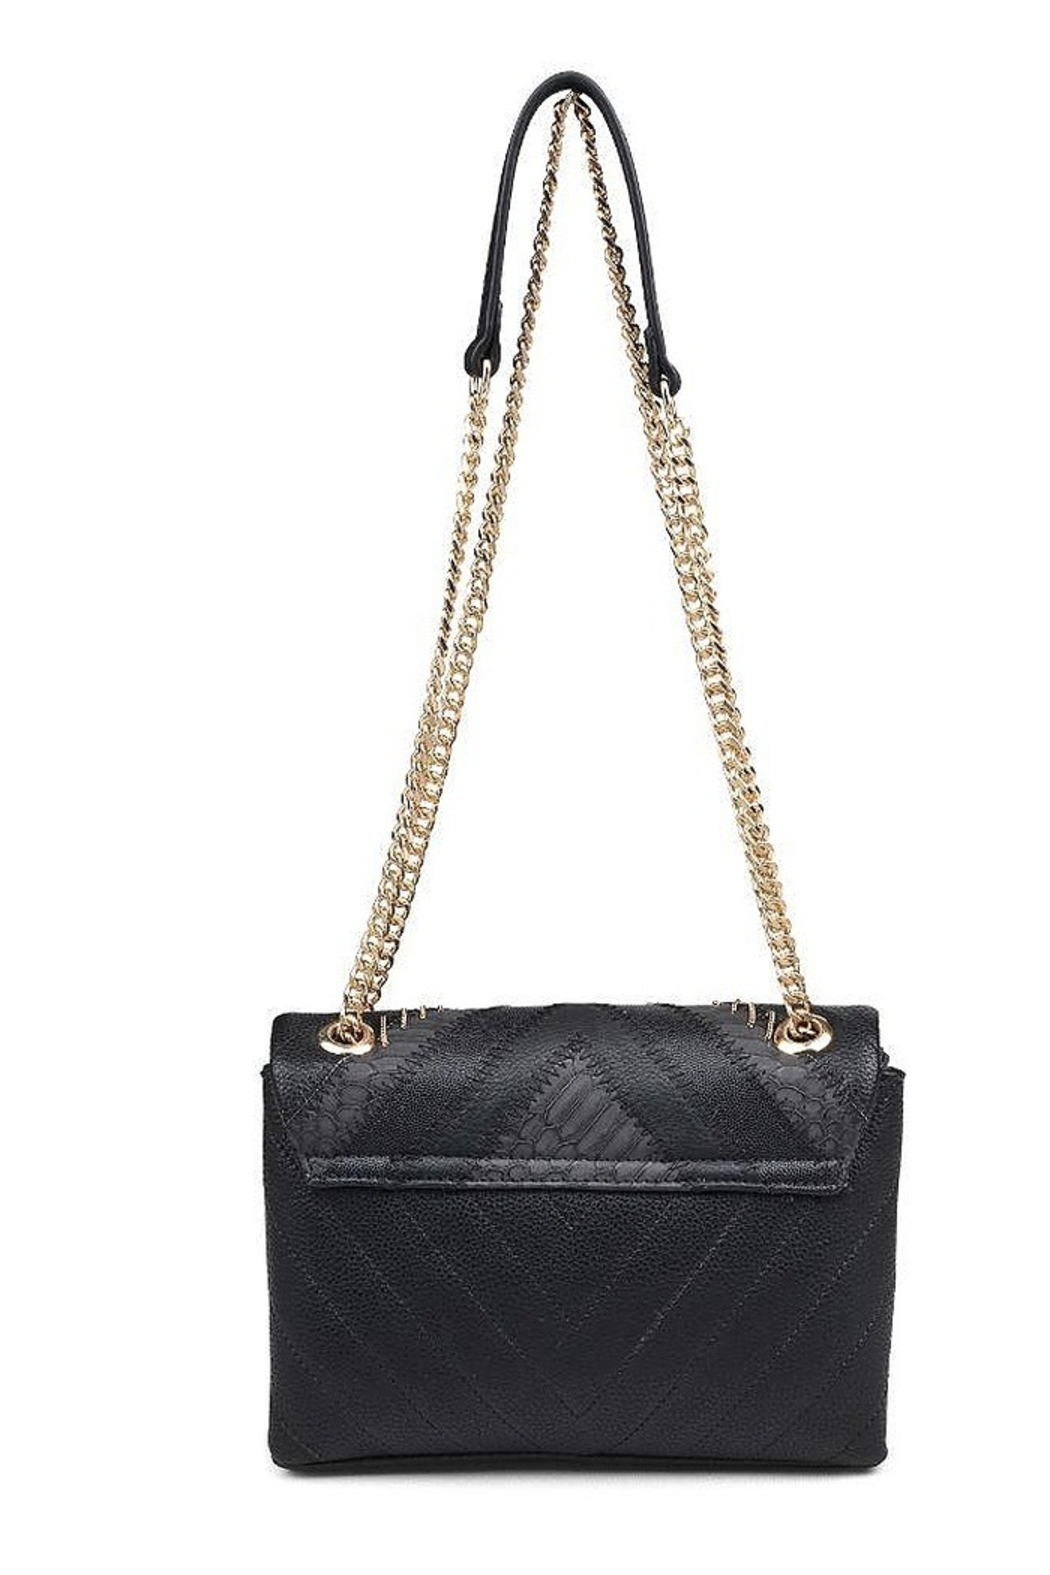 Urban Expressions Kaiden Crossbody - Side Cropped Image